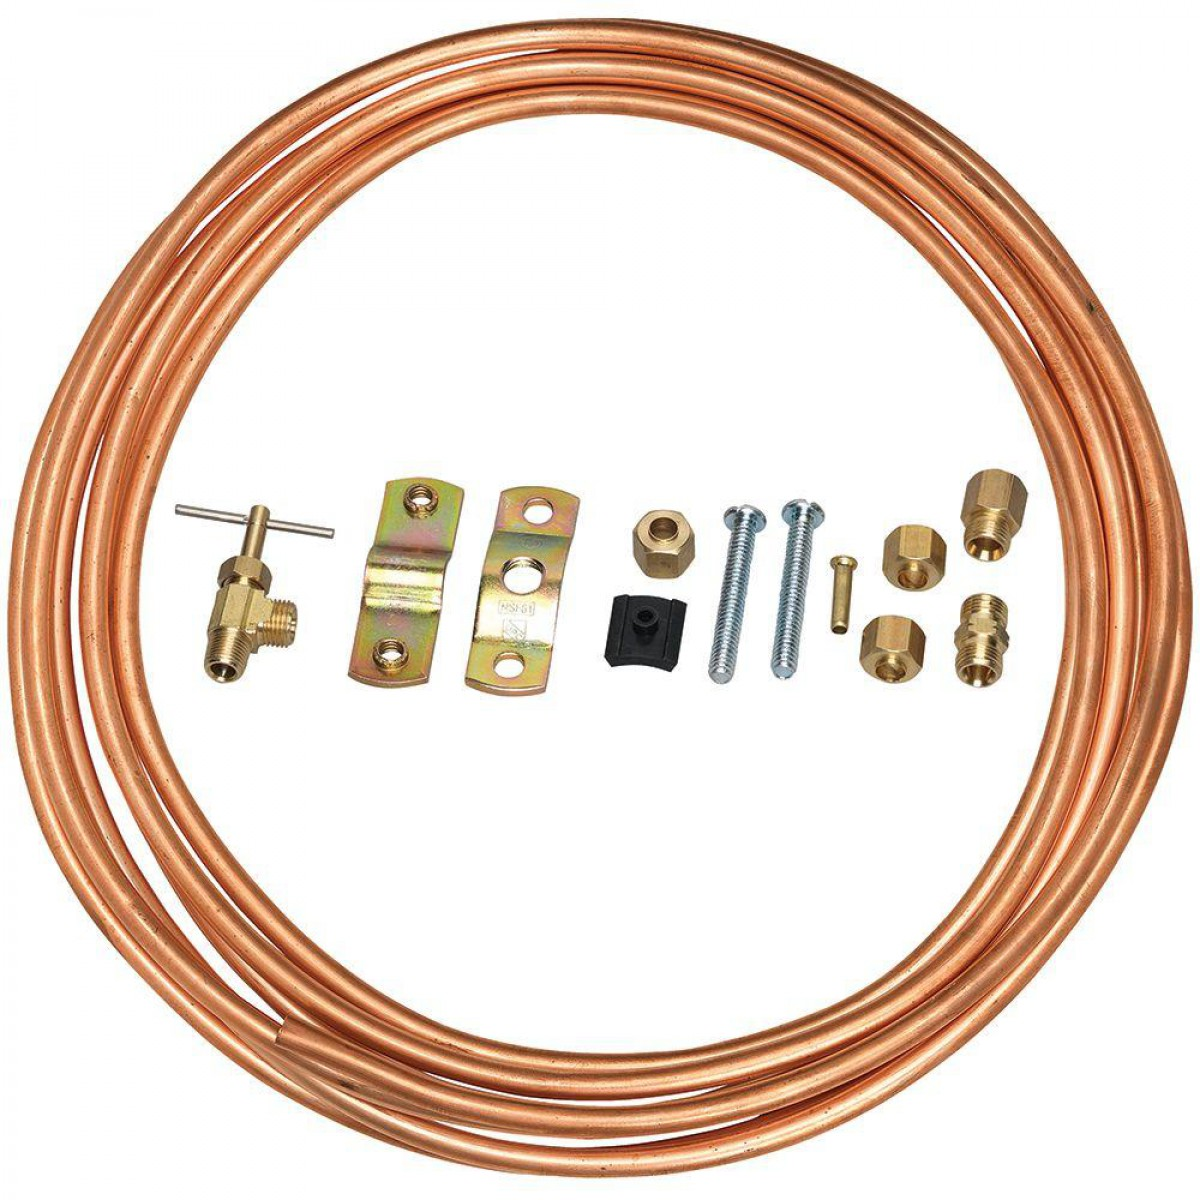 1 4 Inch 15 Foot Copper Waterline Install Supply Line Kit